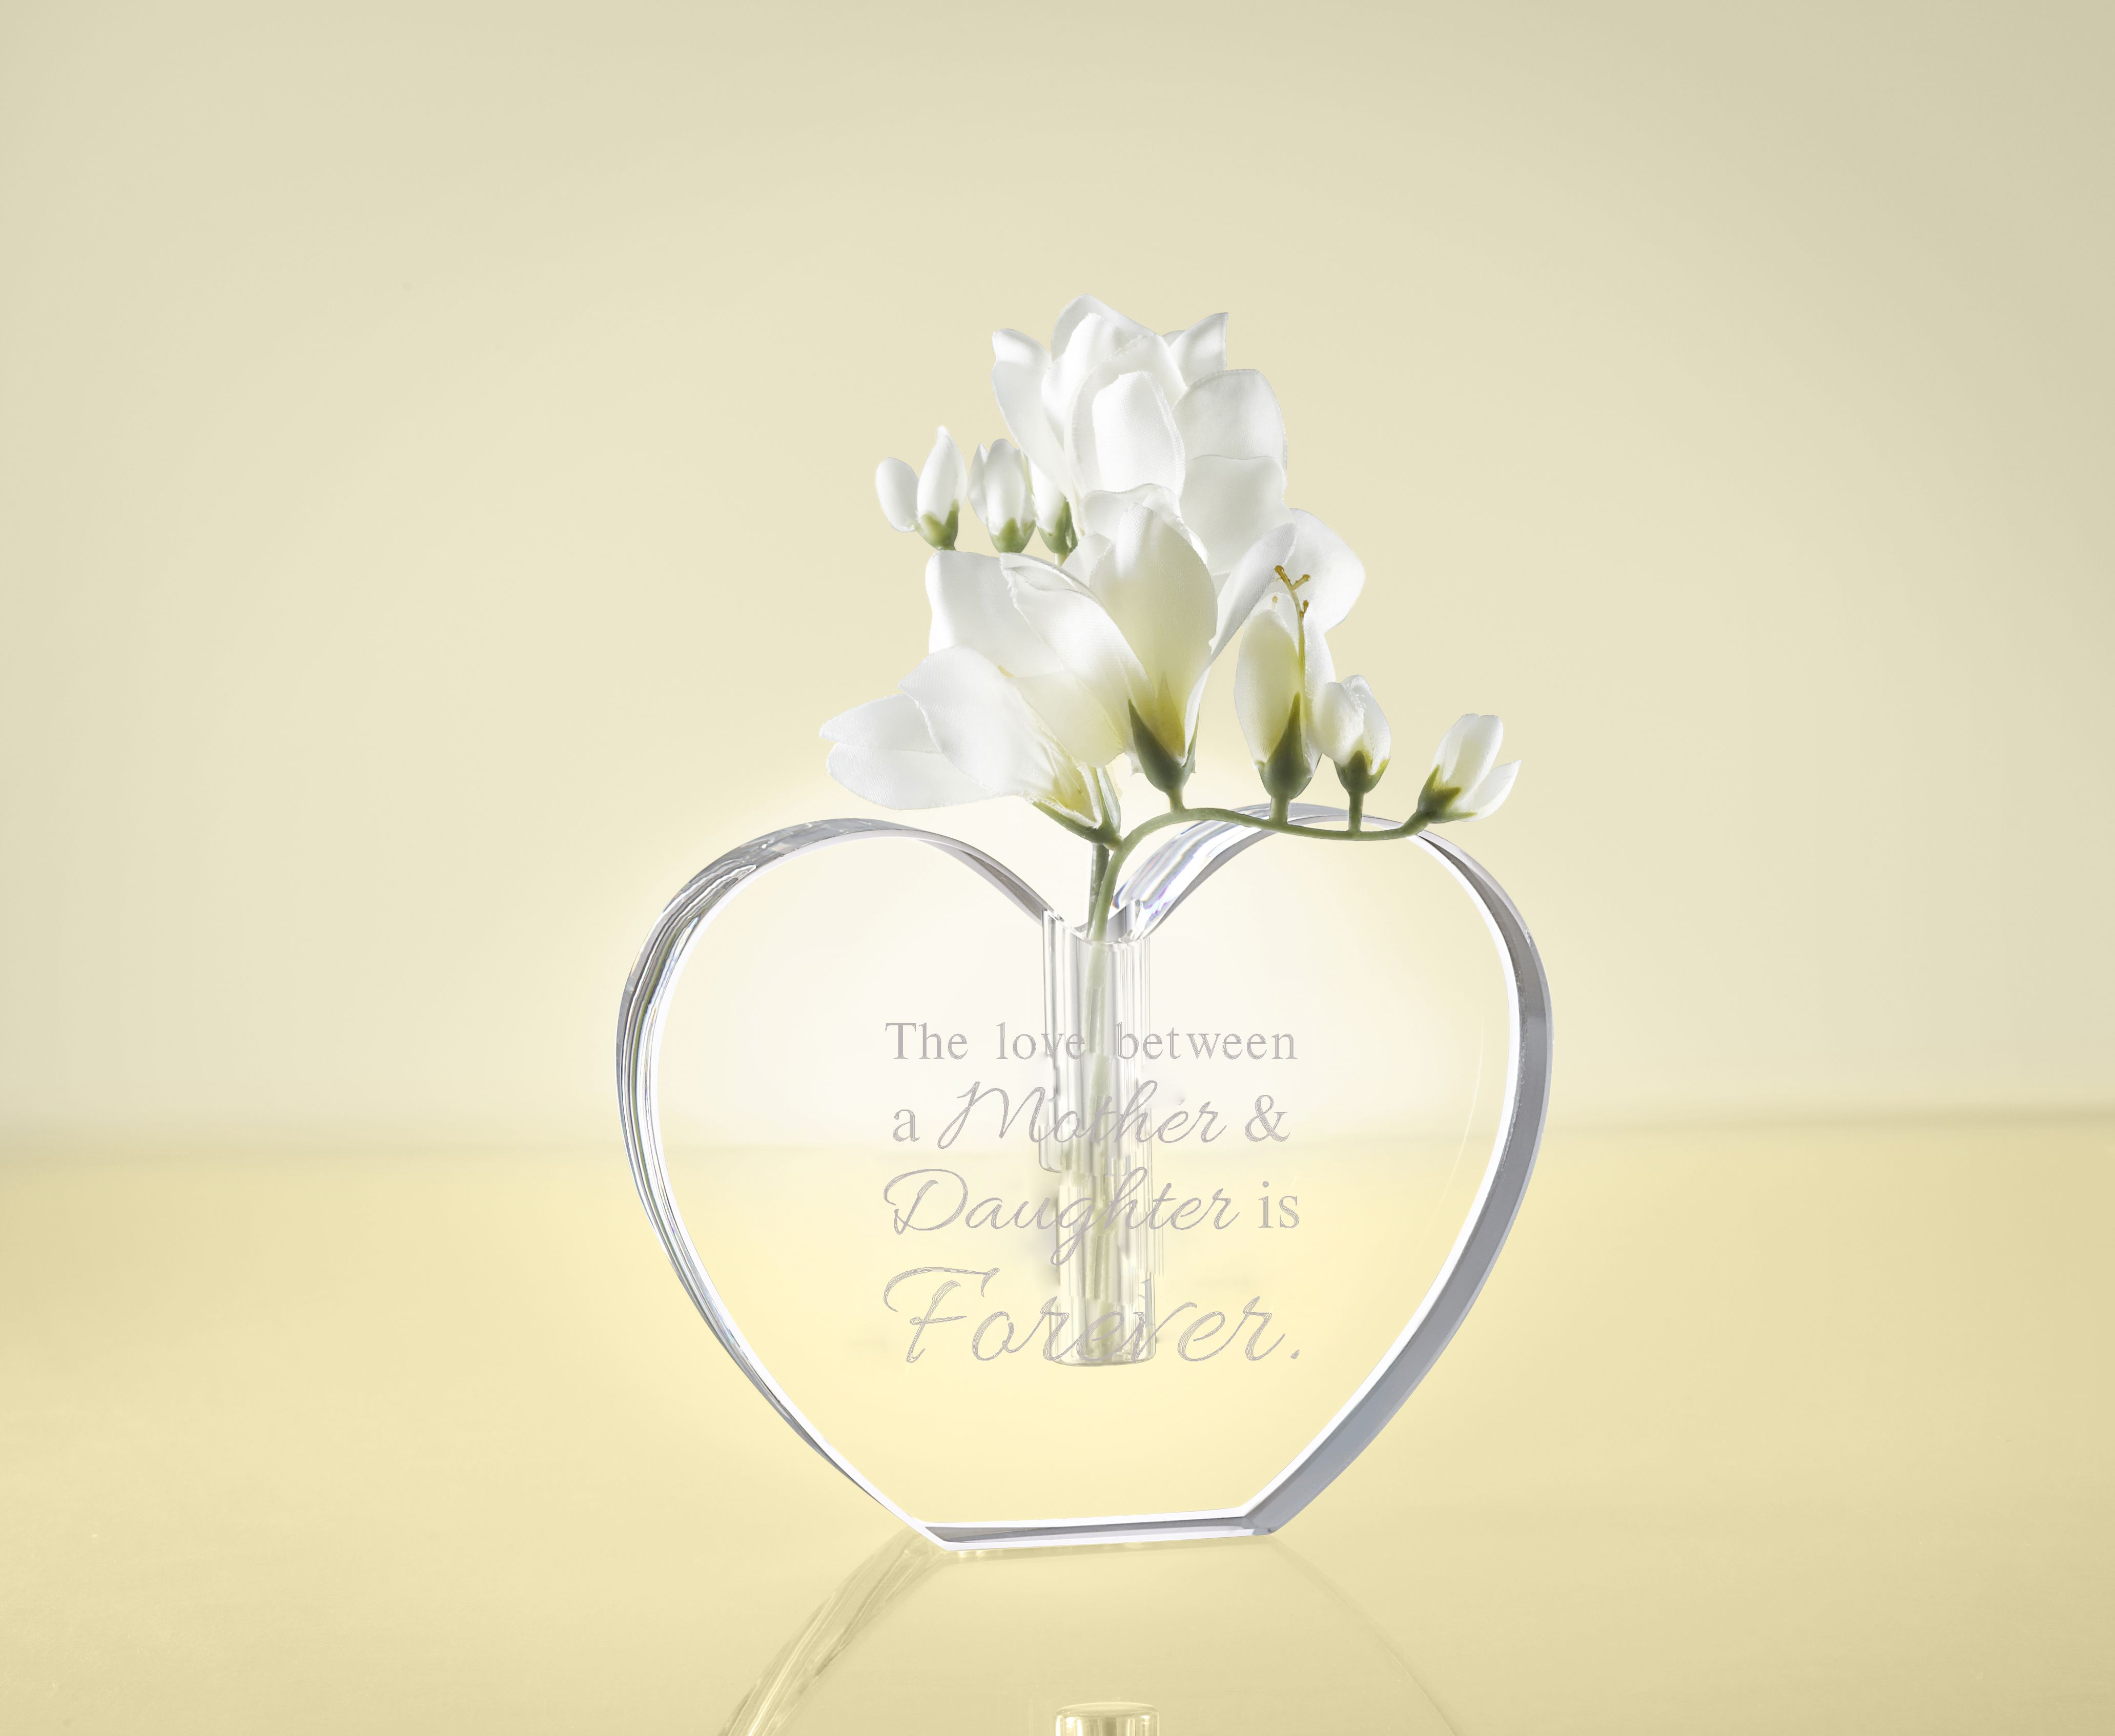 Show mom how much you care with a personalized engraved heart show mom how much you care with a personalized engraved heart shaped glass vase reviewsmspy